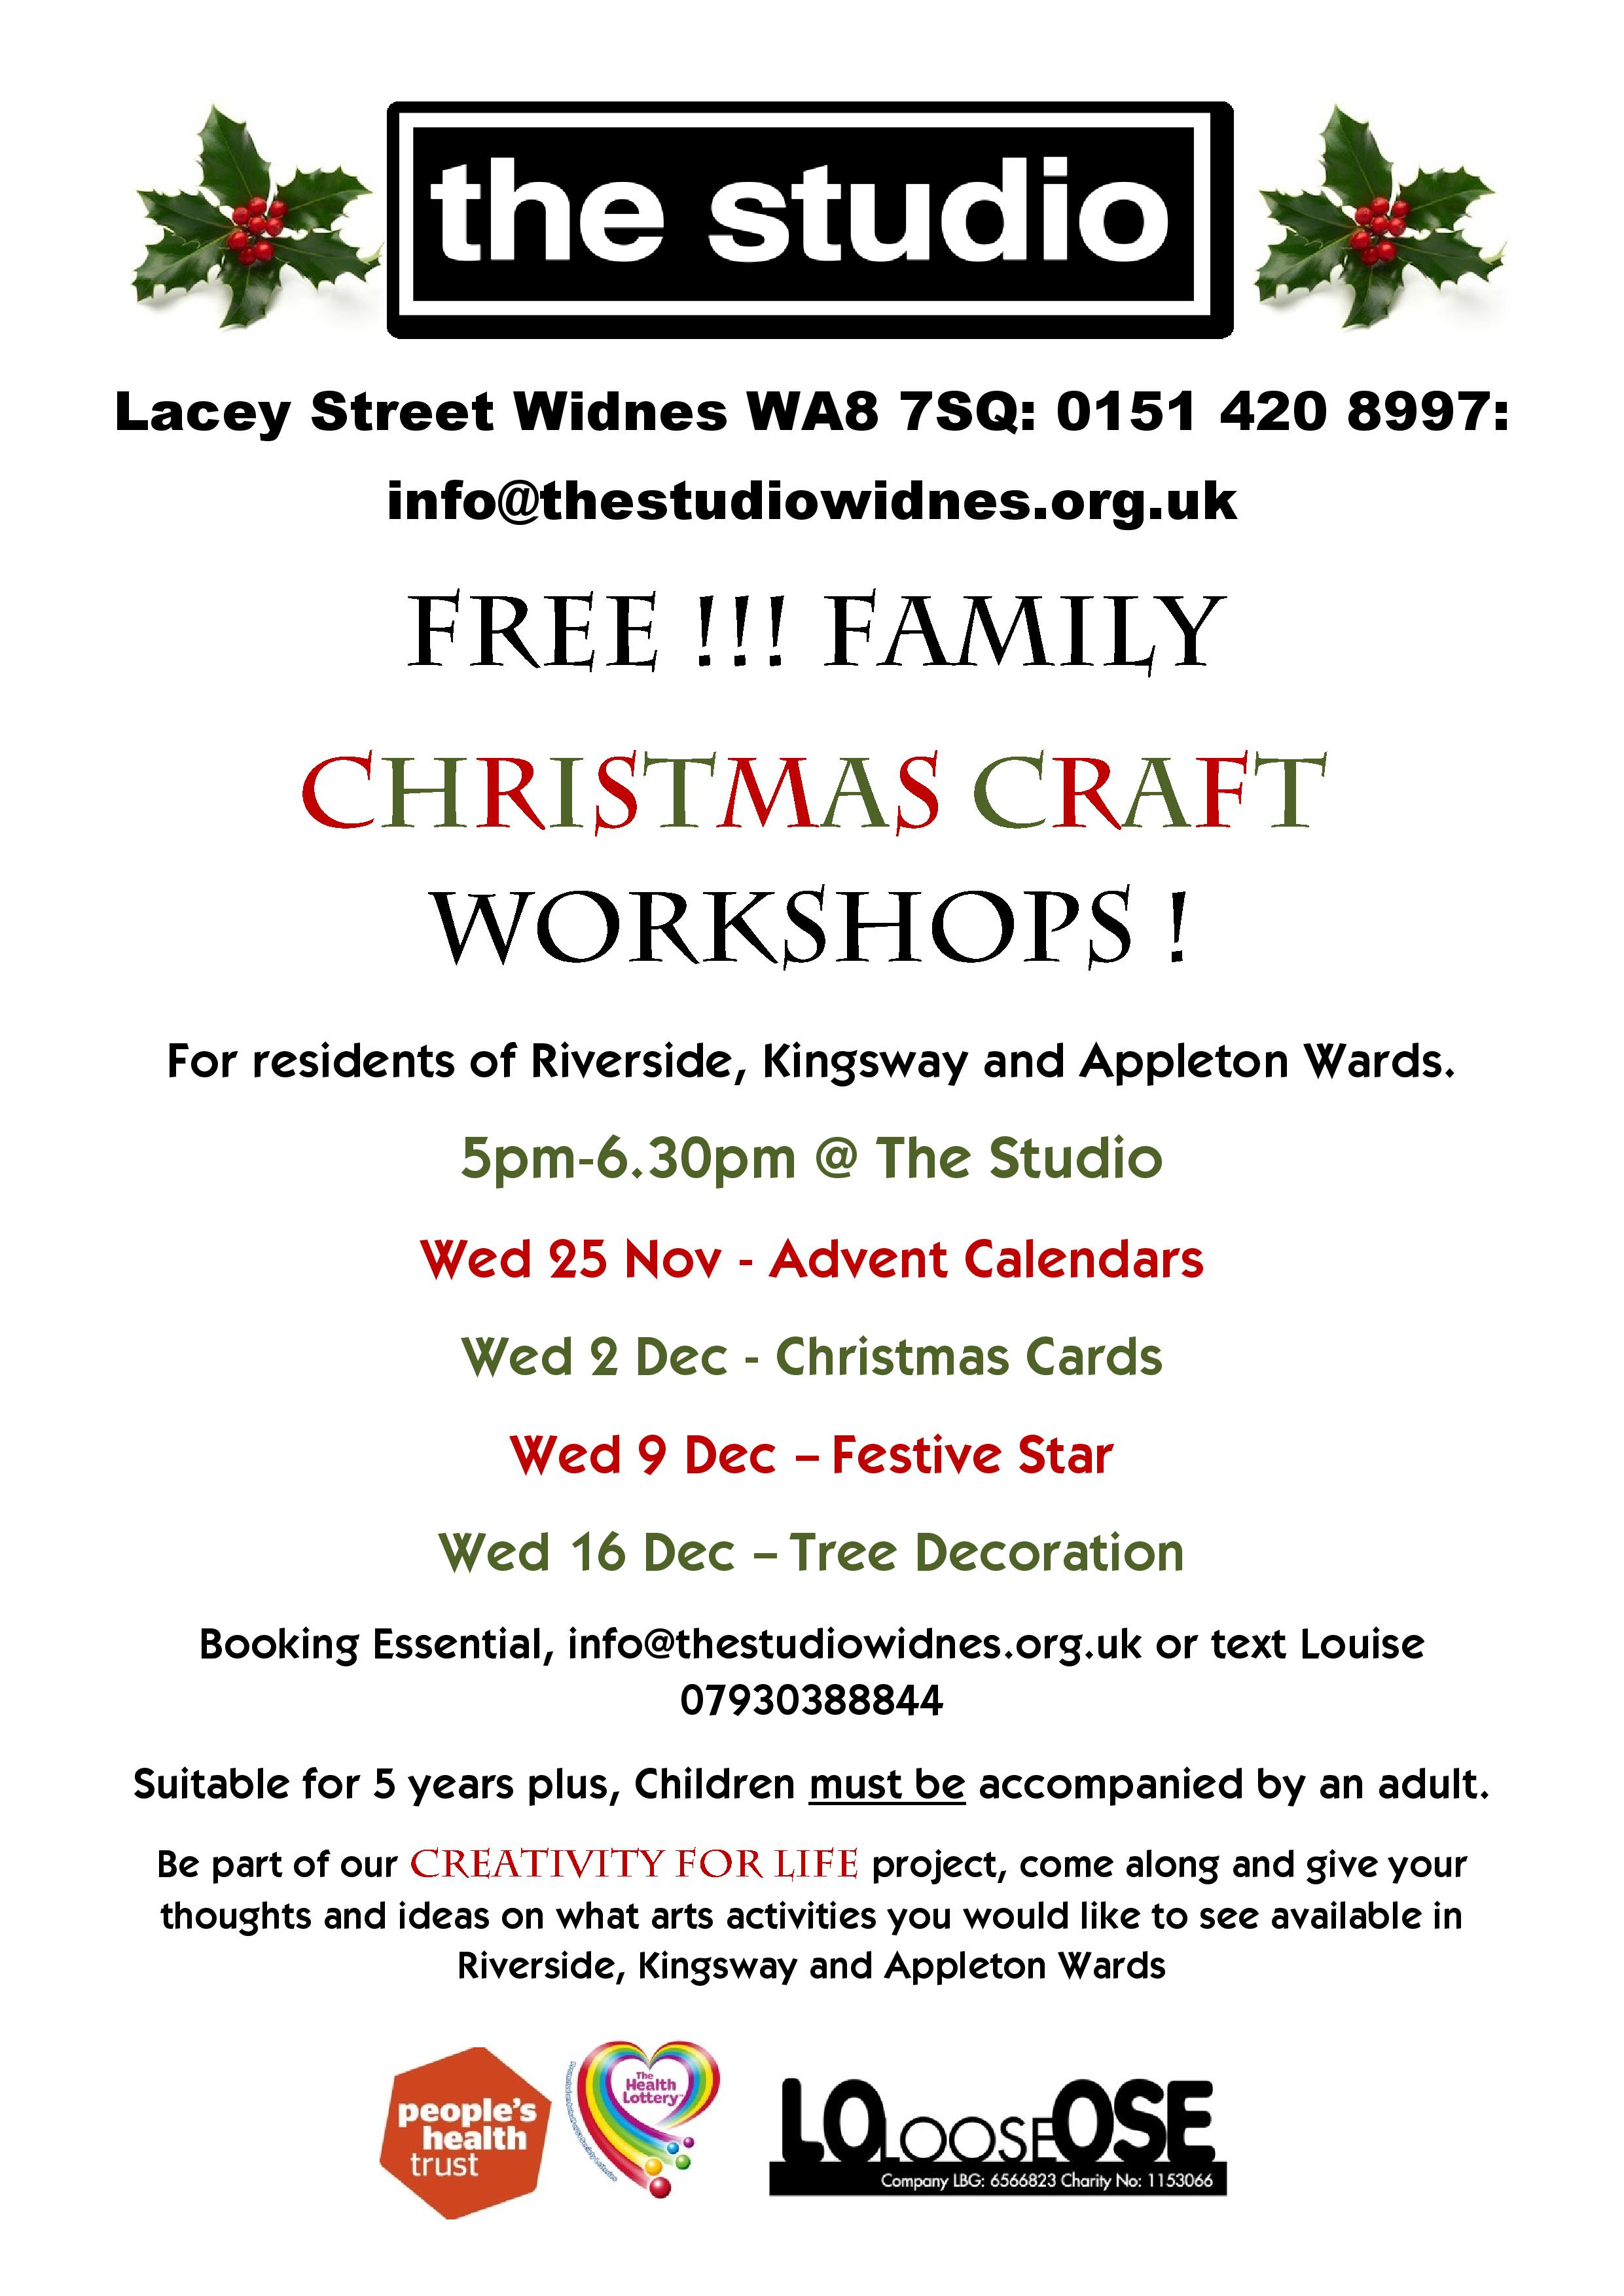 FREE Christmas Craft Workshops